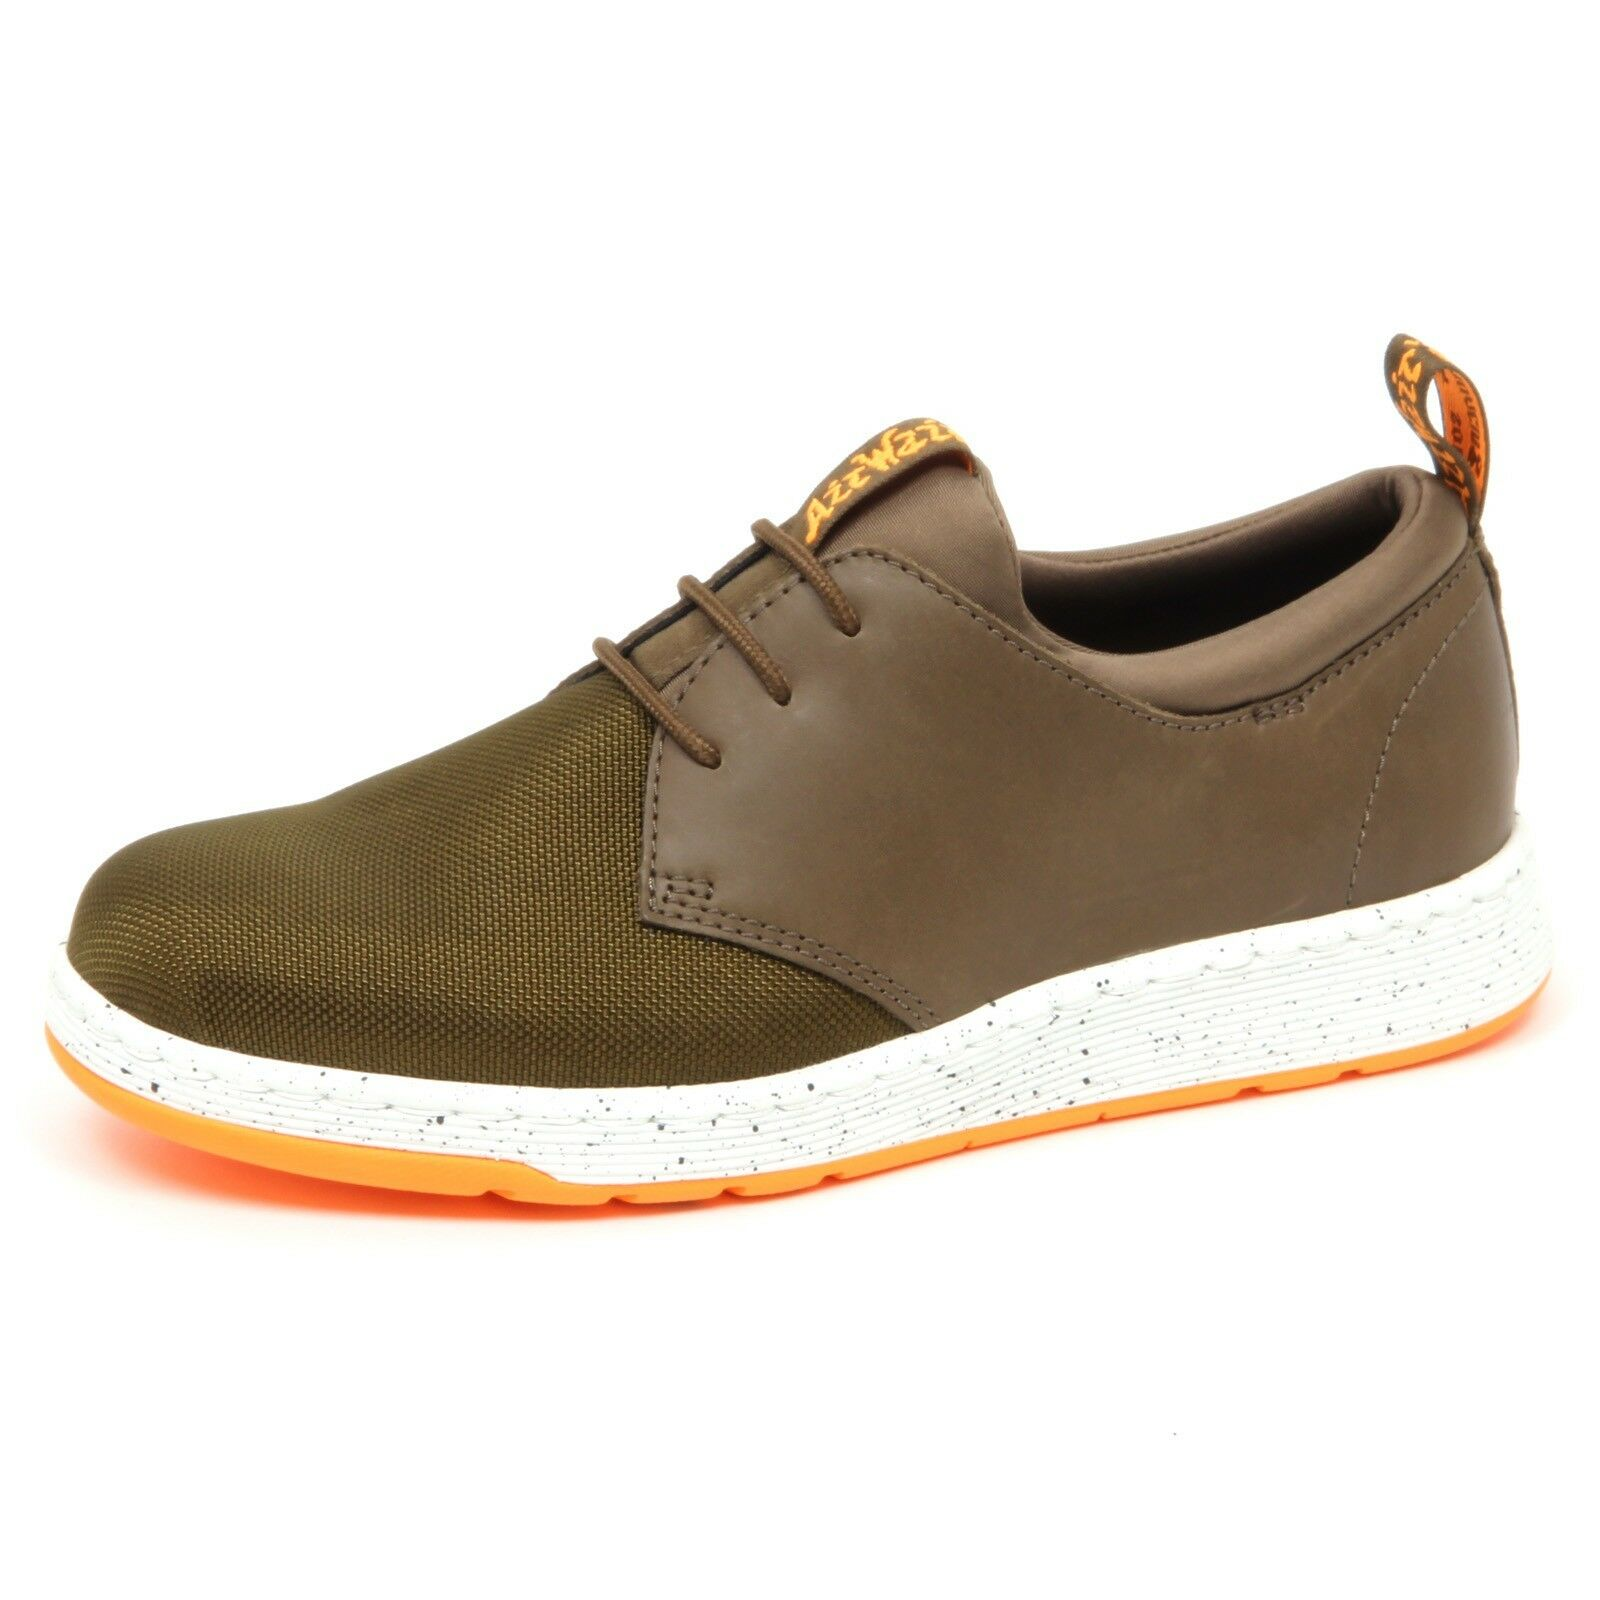 D7340 (without box) sneaker uomo green leather/tissue DR. MARTENS shoe man